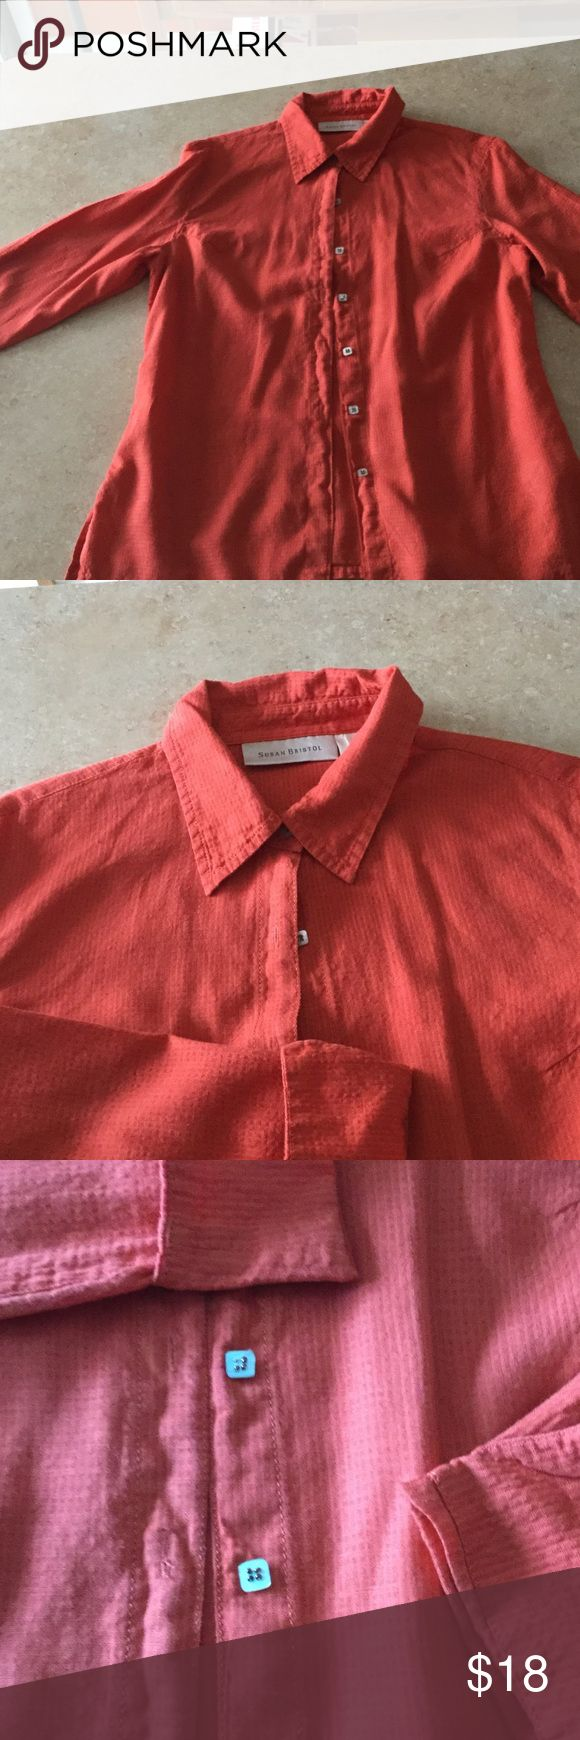 "Beautiful orange ladies ""work shirt""🎃 Waffle linen with great details!  Mother of pearl square buttons, 3/4 rolled sleeves, side slits💕 Susan Bristol Tops Button Down Shirts"